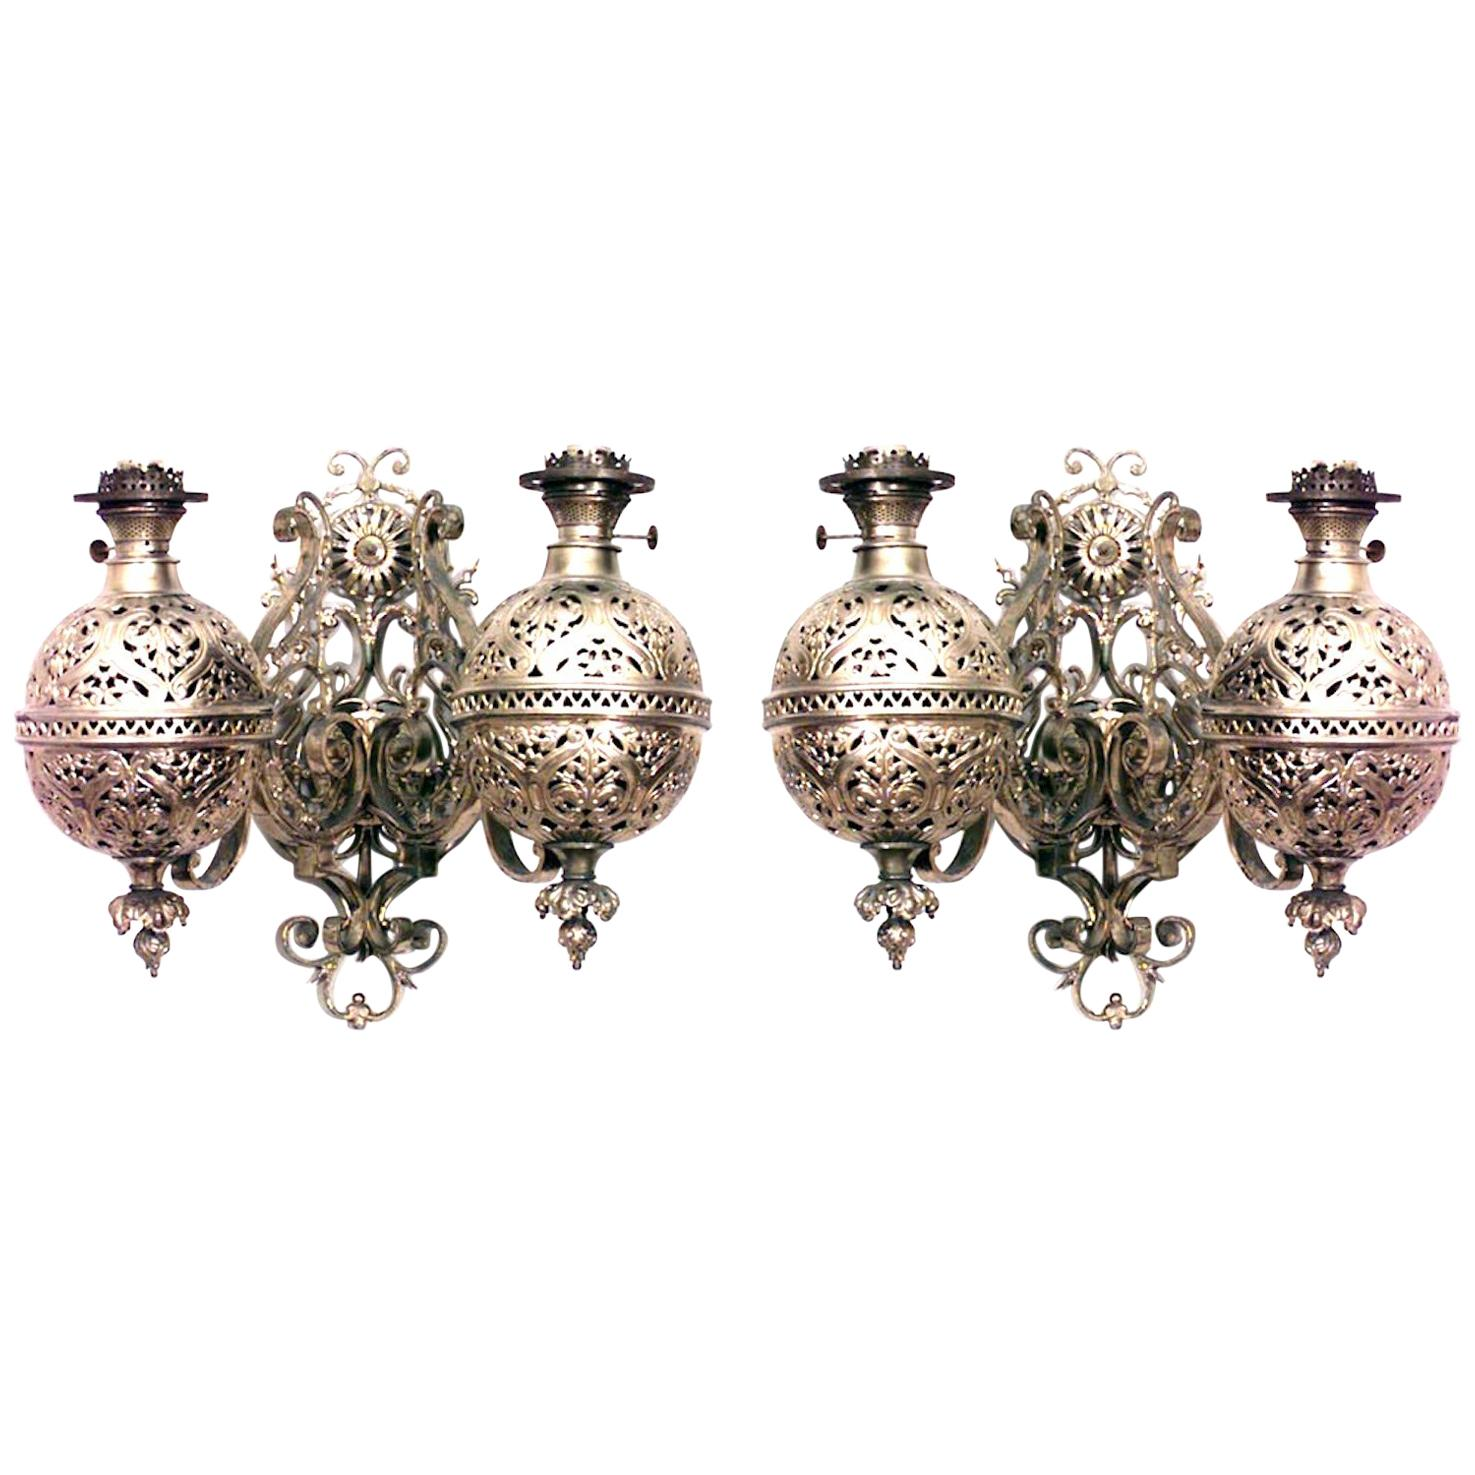 Pair of American Victorian Brass Filigree Oil Wall Sconces